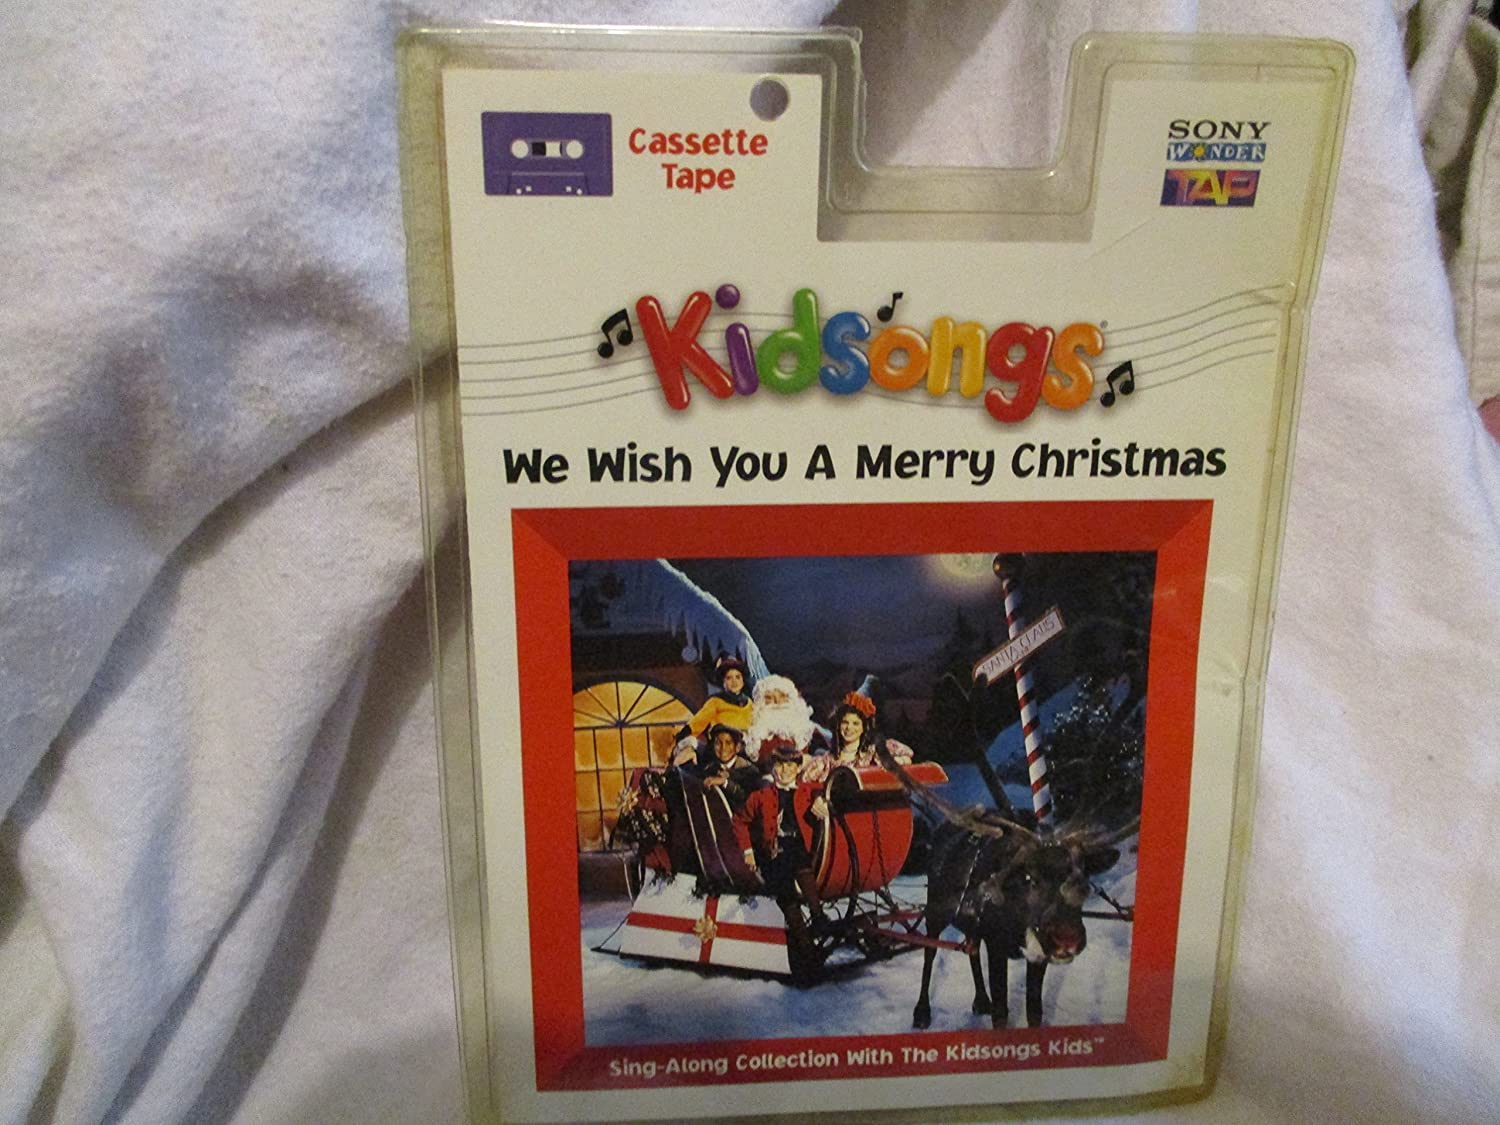 We Wish You a Merry Christmas [CASSETTE]: Amazon.co.uk: Music